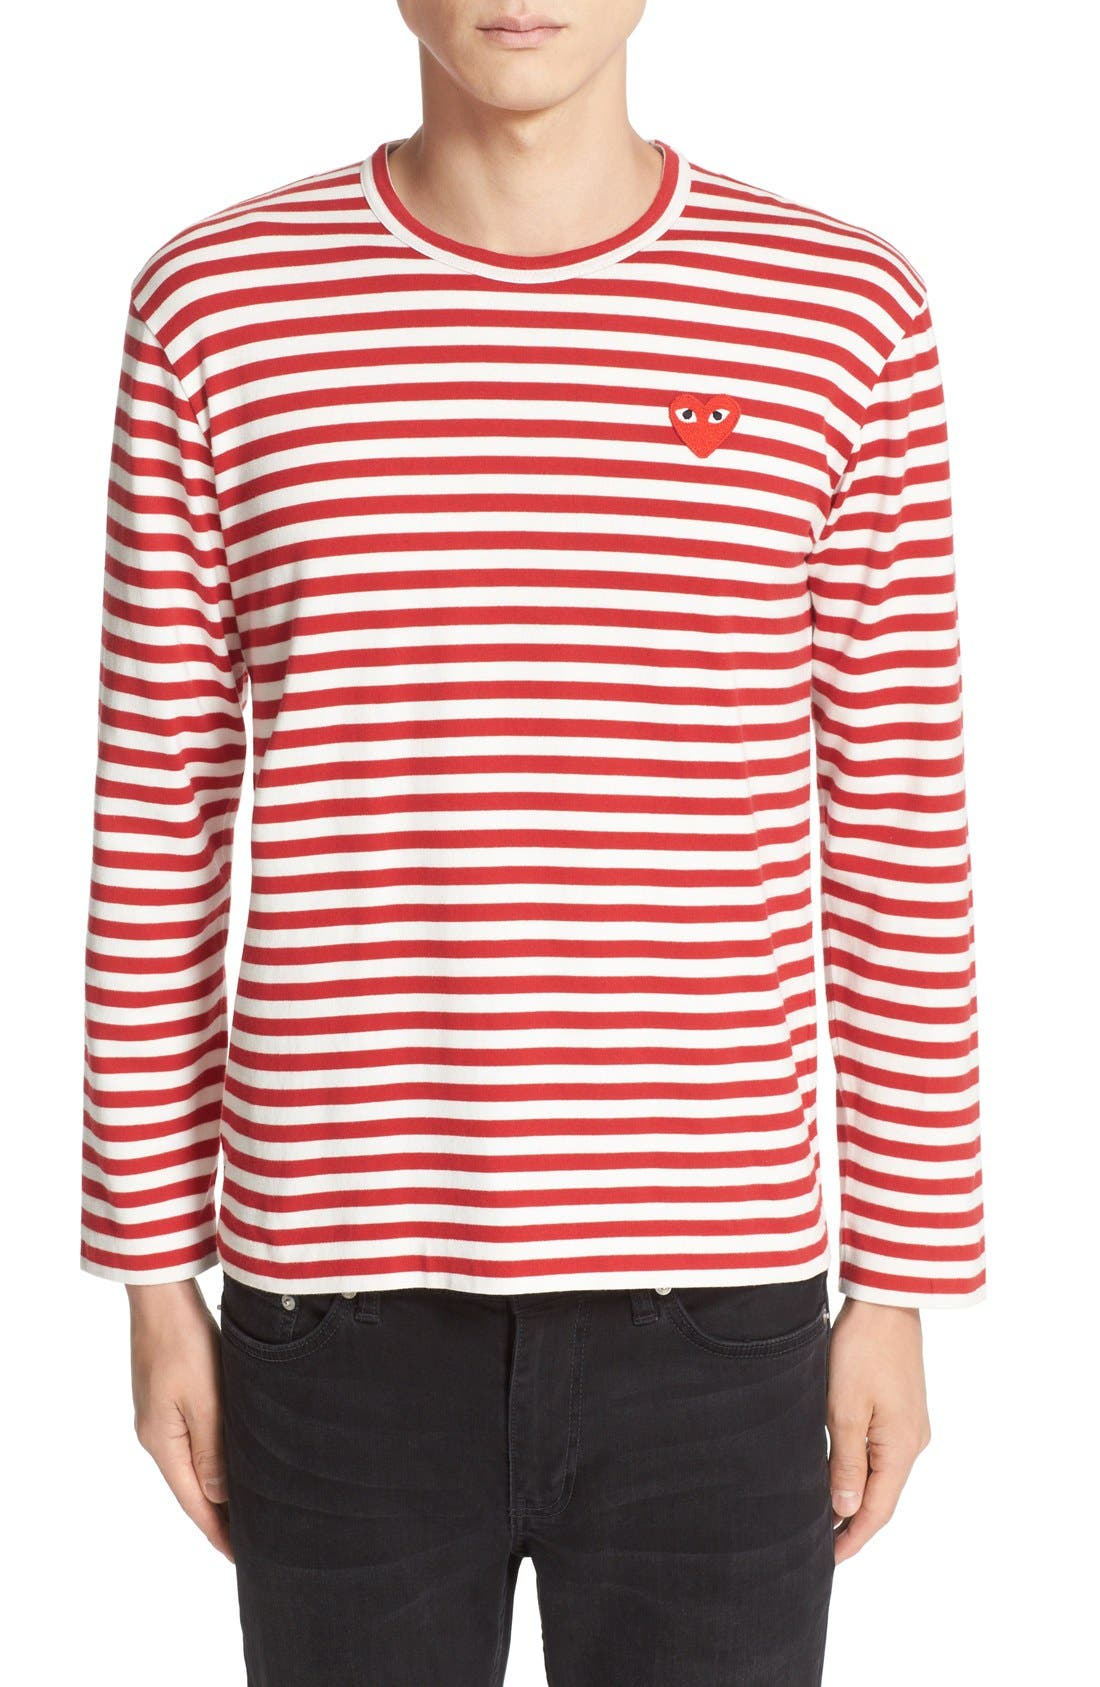 Stripe Slim Fit Long Sleeve T-Shirt, Main, color, RED/ WHITE